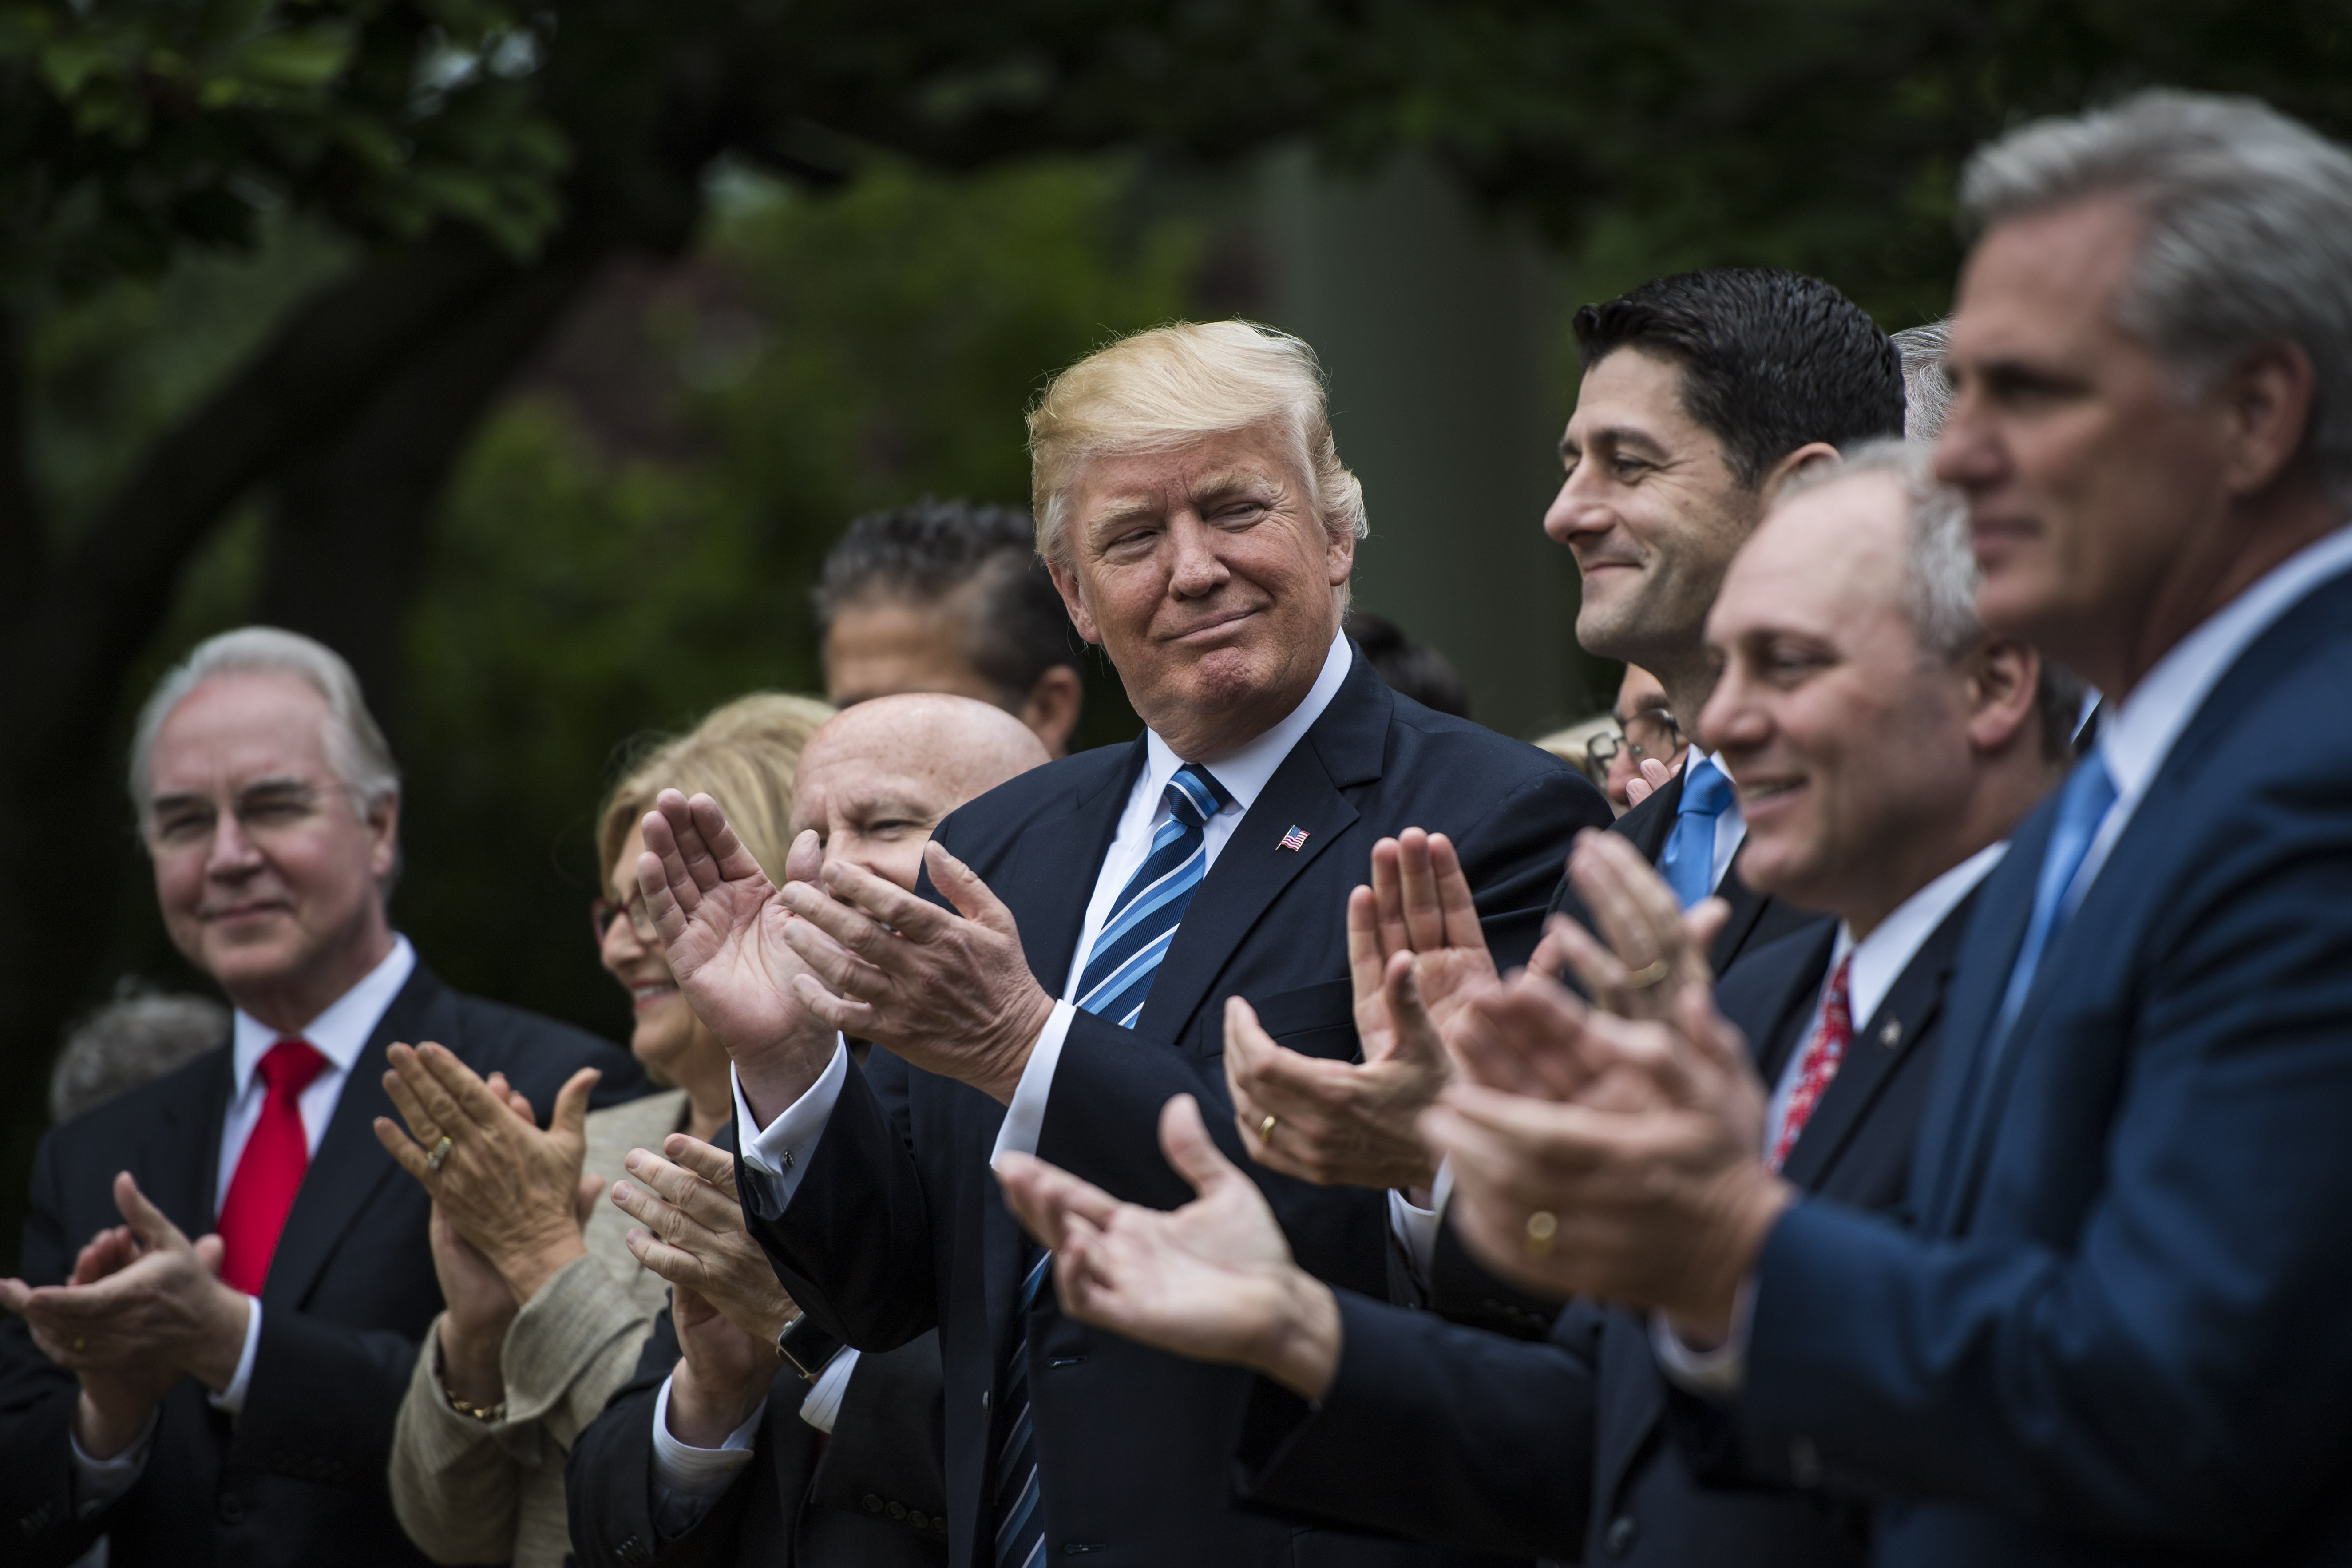 President Donald Trump looks to House Speaker Paul Ryan of Wis., and other House congressmen in the Rose Garden after the House pushed through a health care bill, at the White House in Washington, D.C. on May 04, 2017.